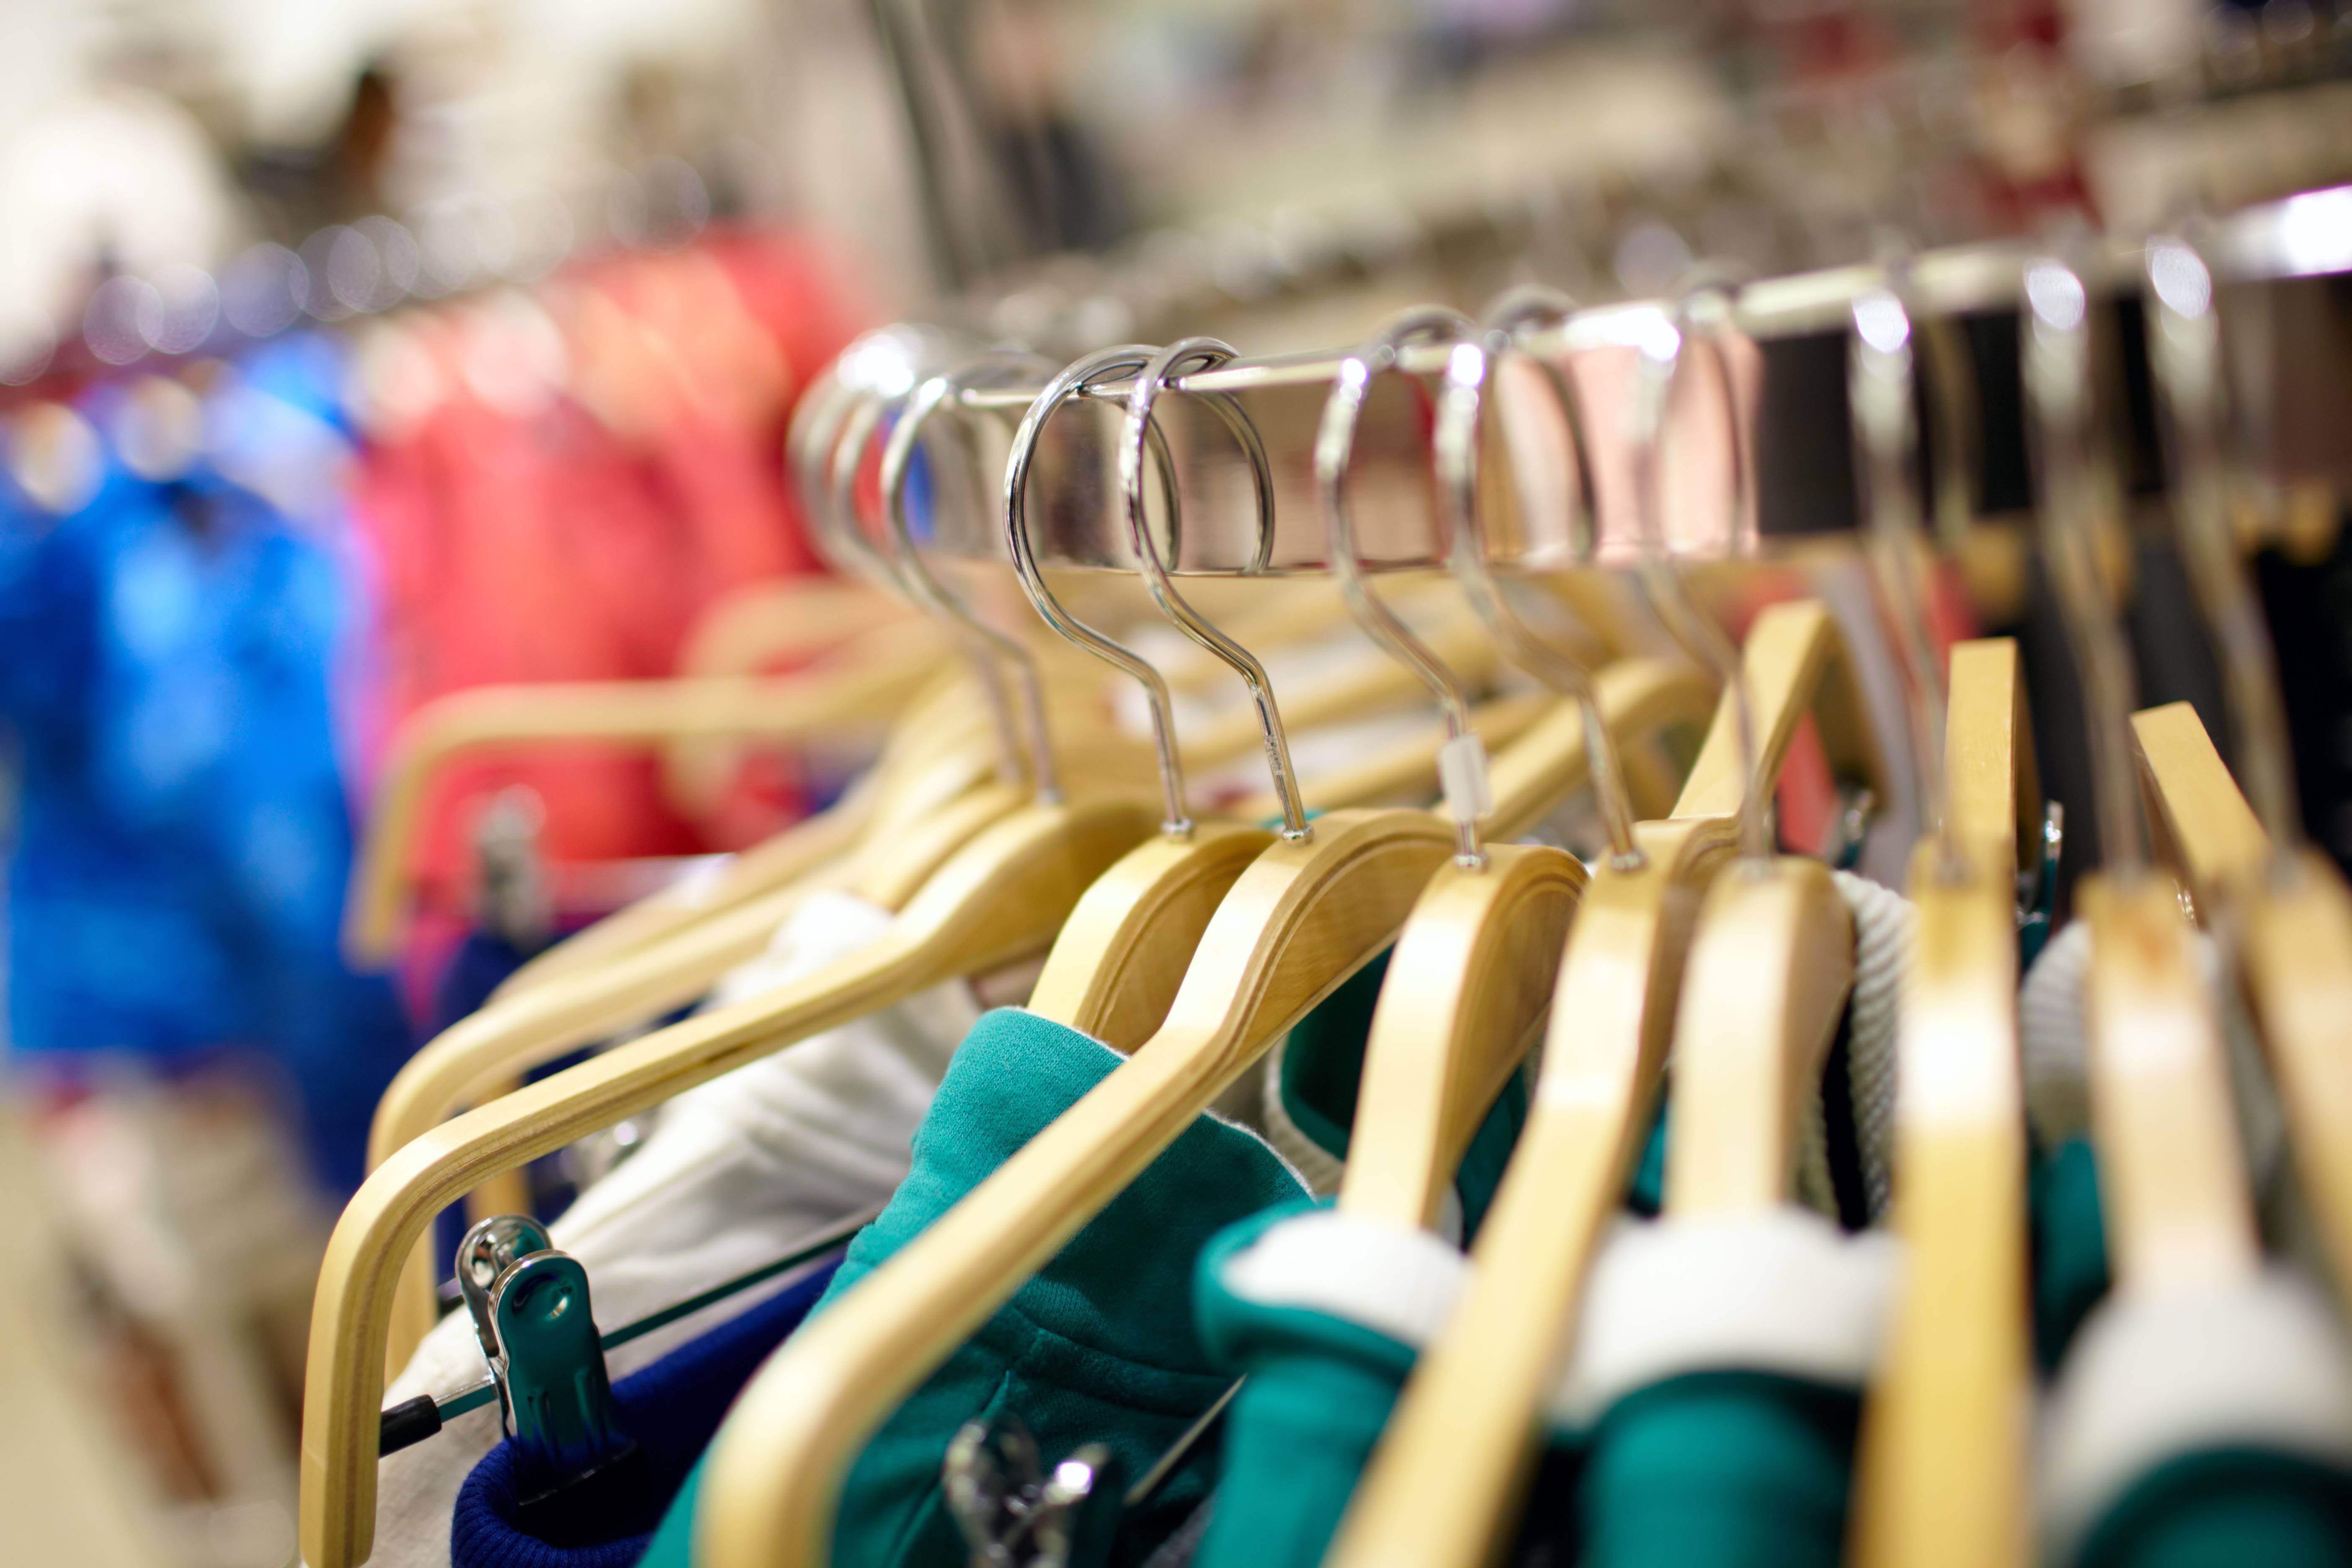 Awesome step-by-step consignor tips for selling your stuff at consignment sales and getting the most money for your effort.